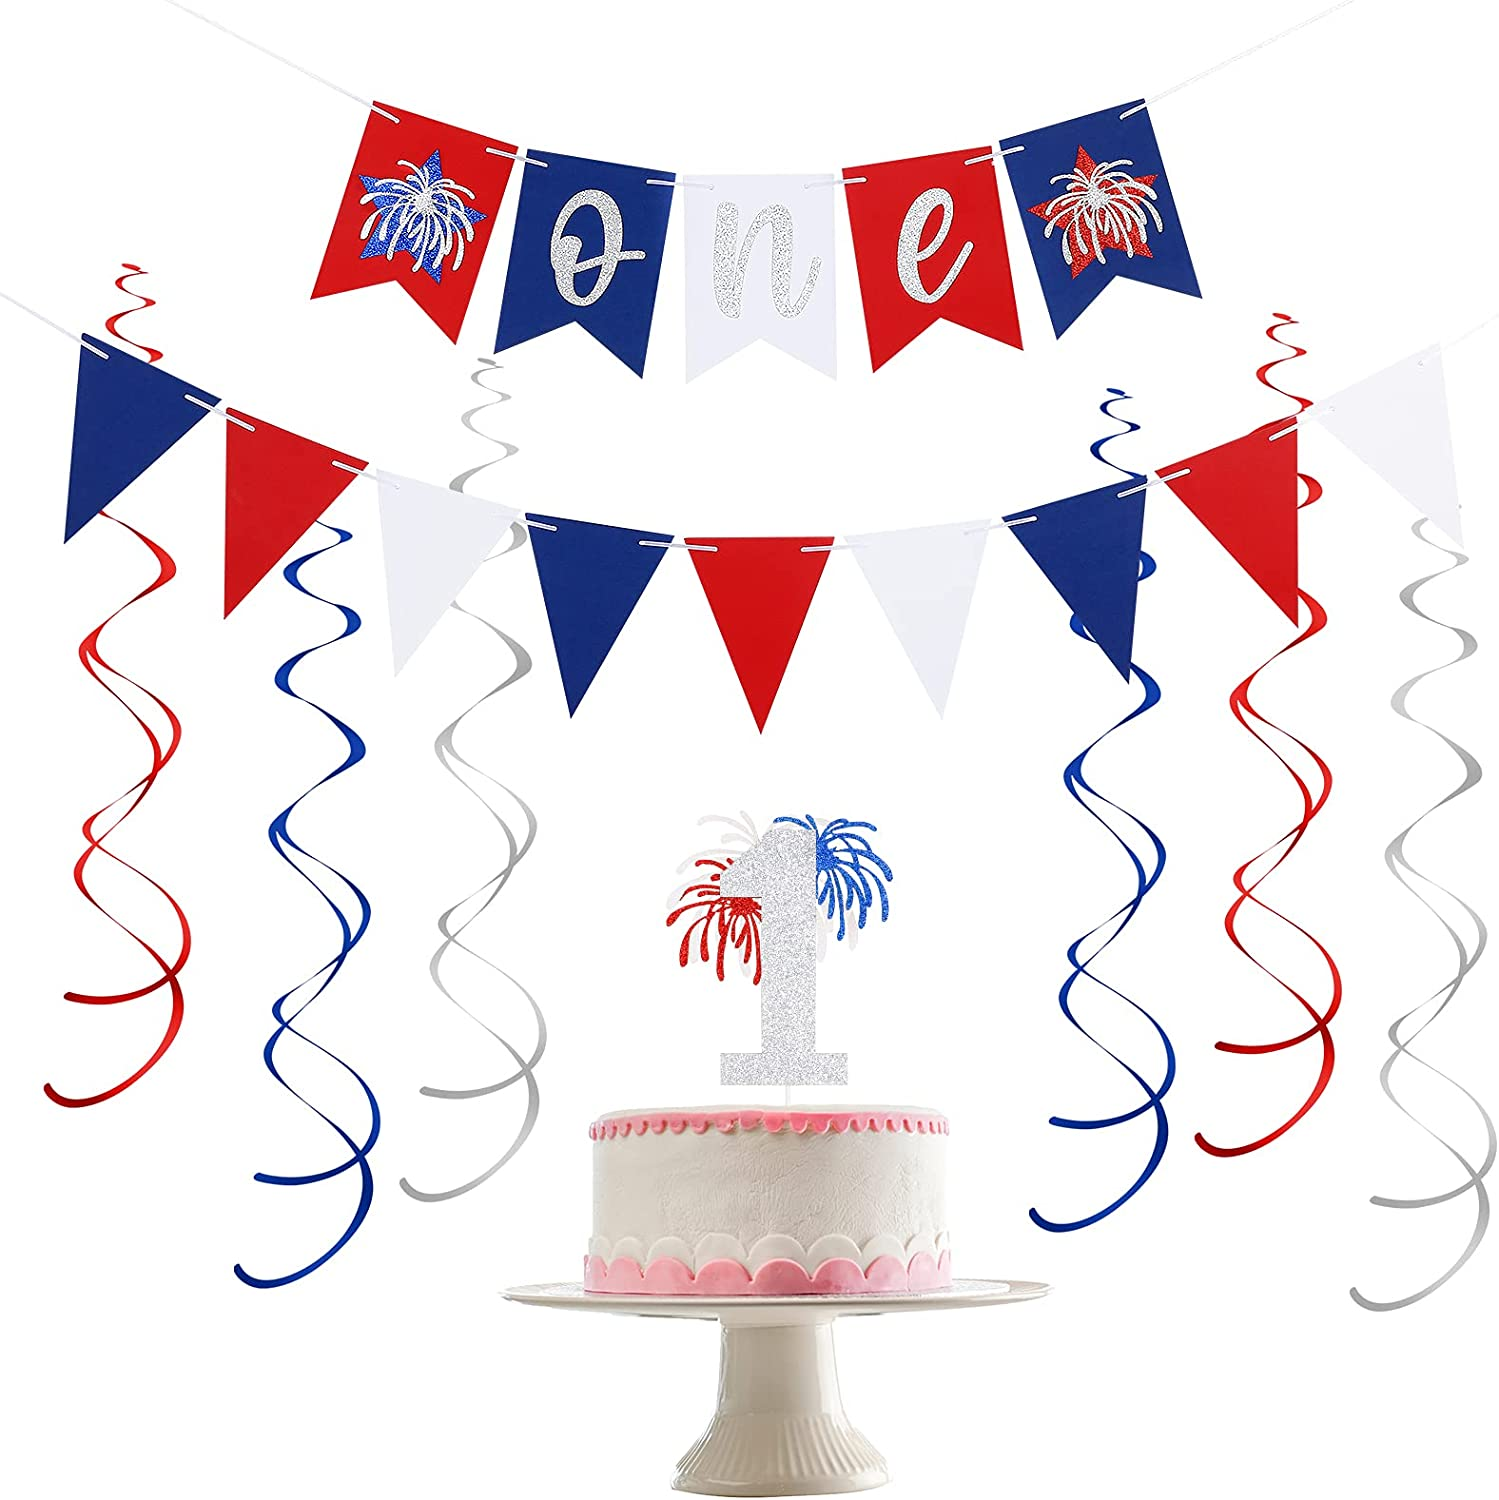 4th of July 1st Birthday Decorations- One Banner Red White and Blue Glitter,Patriotic One Cake Topper,Patriotic Triangle Flag Pennant,Hanging Swirls Party Decor Supplies, 4th of July Baby Shower Decorations